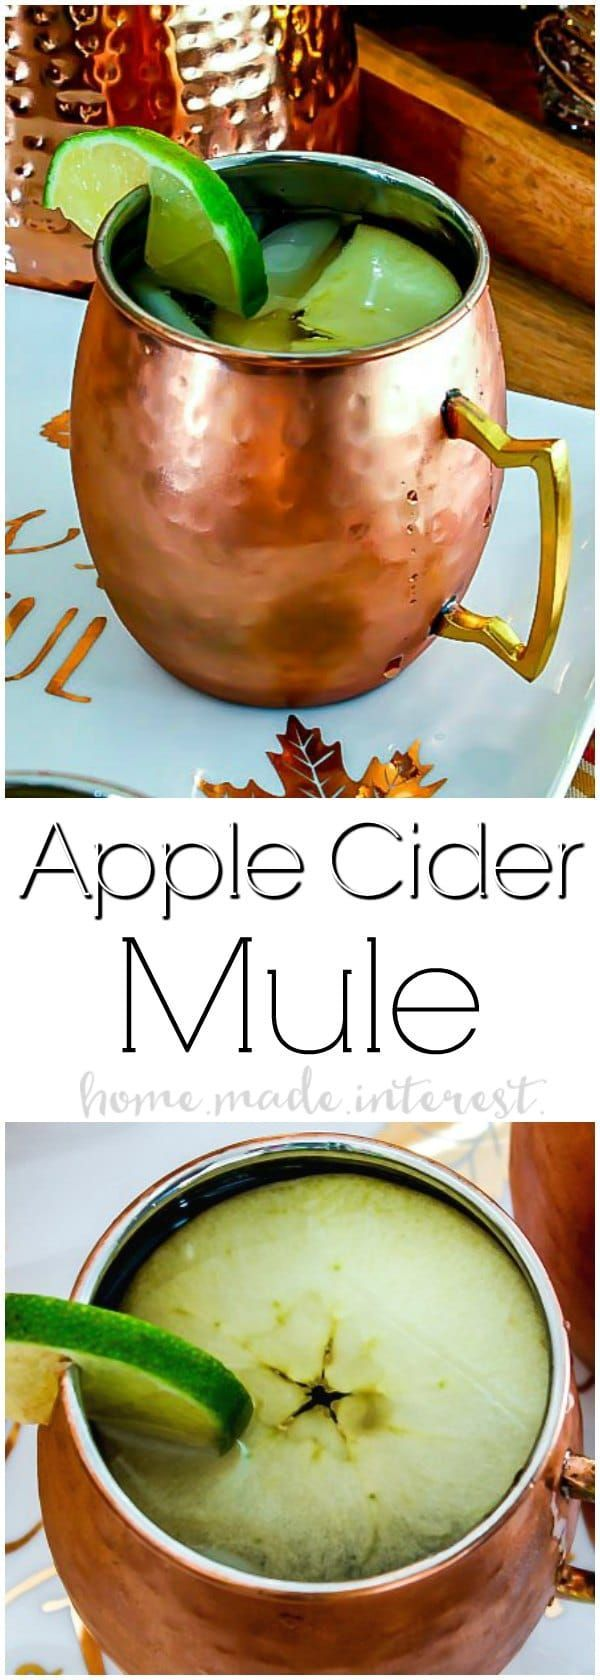 Apple Cider Mule | This Apple Cider Mule is going to be your favorite fall cocktail recipe! Apple Cider, vodka and ginger beer combined to make a fall moscow mule. Need a Halloween party cocktail or Halloween drink recipe? Your friends are going to love this fall cocktail recipe! AD